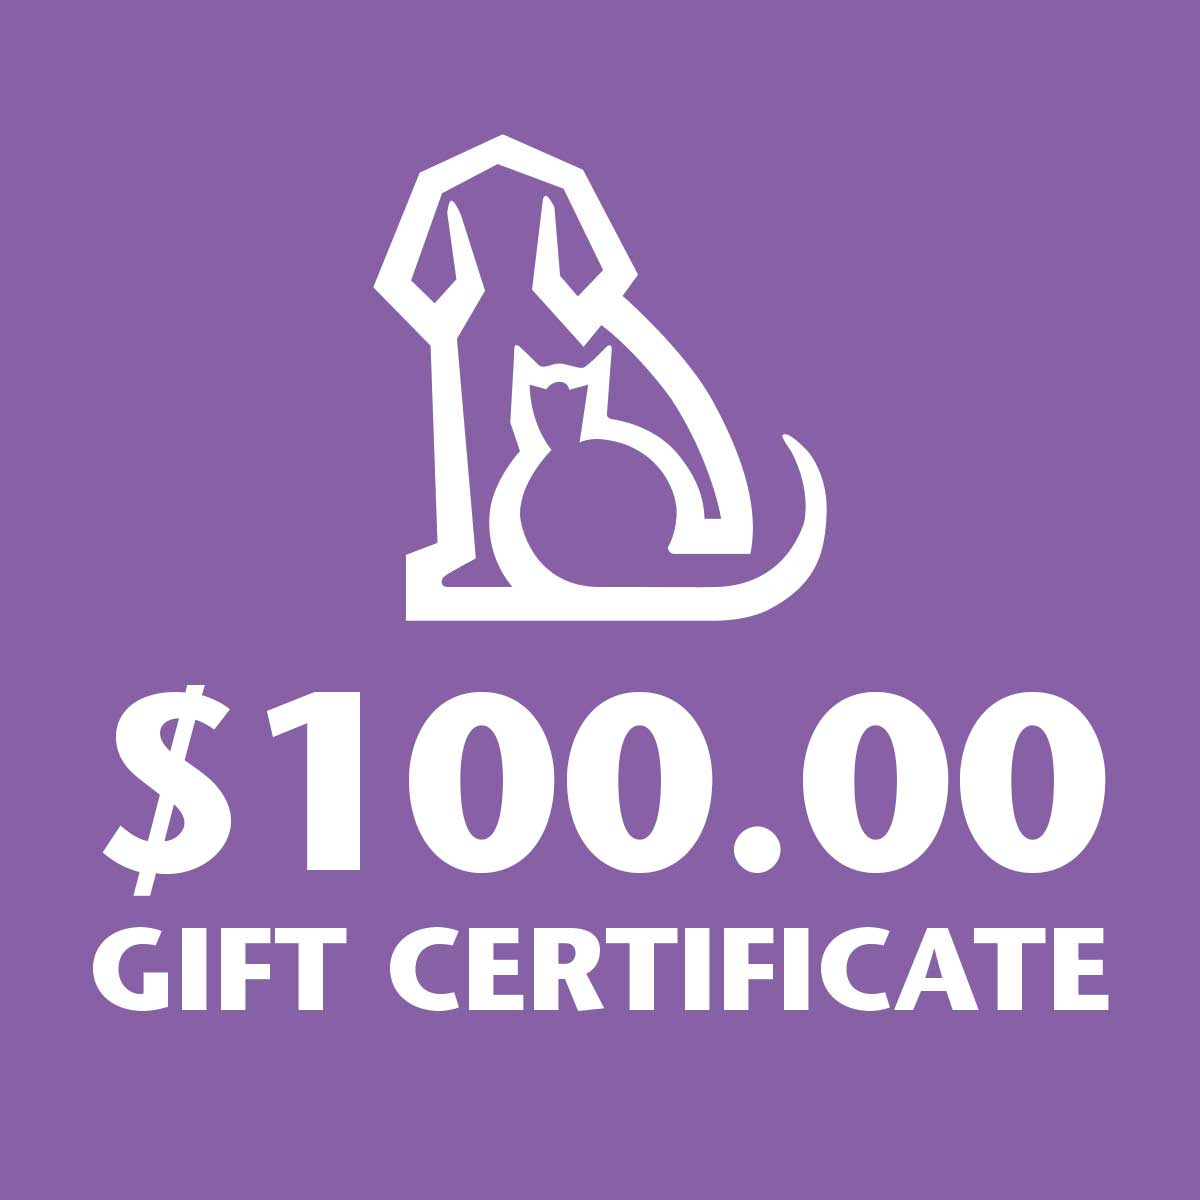 100 Dollar gift certificate to Ryan's Pet Supplies